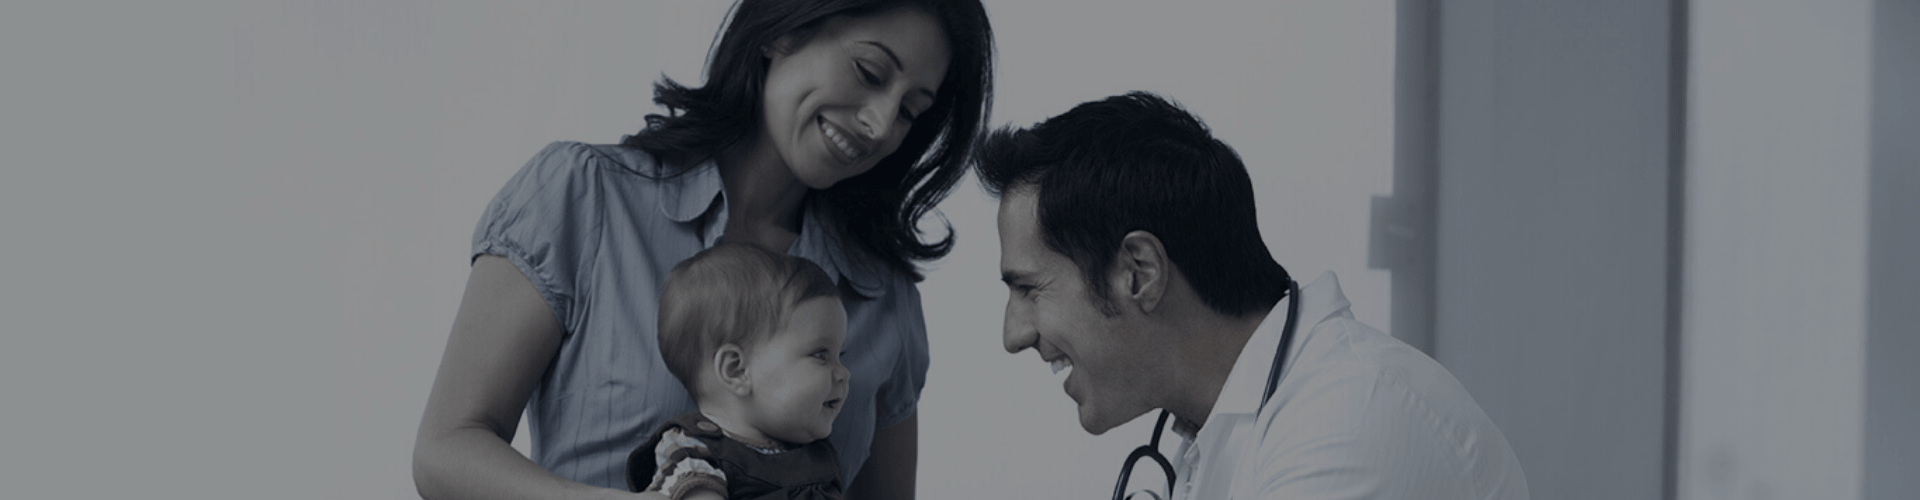 The doctor is treating the child in front of the child's mother.